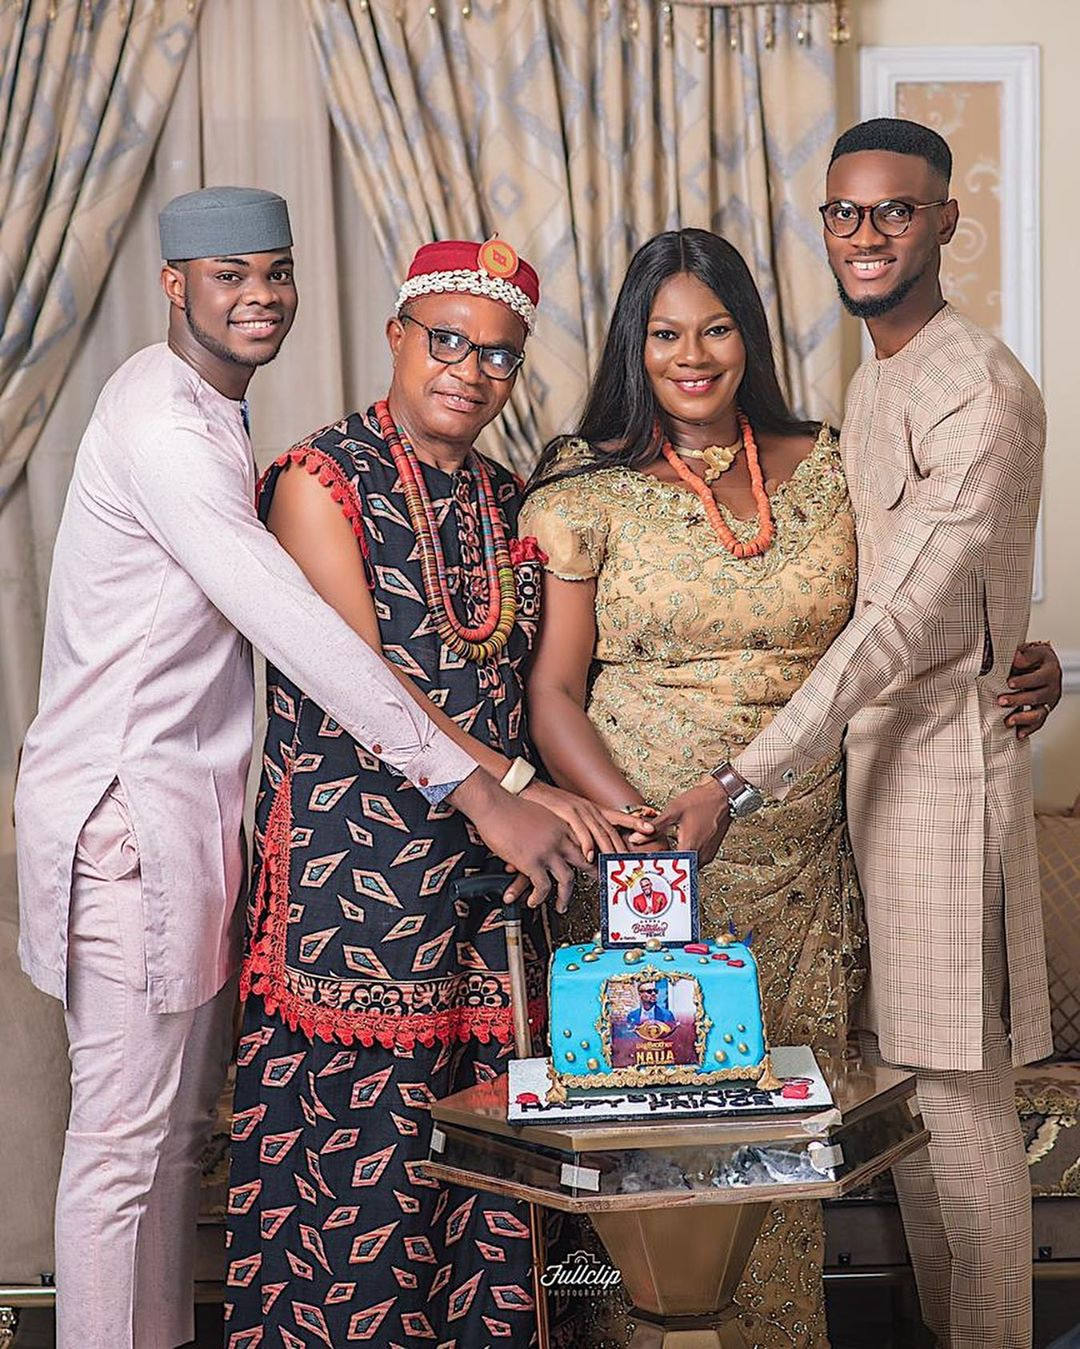 #BBNaija2020 : Prince's family members celebrate his birthday in style (pictures)